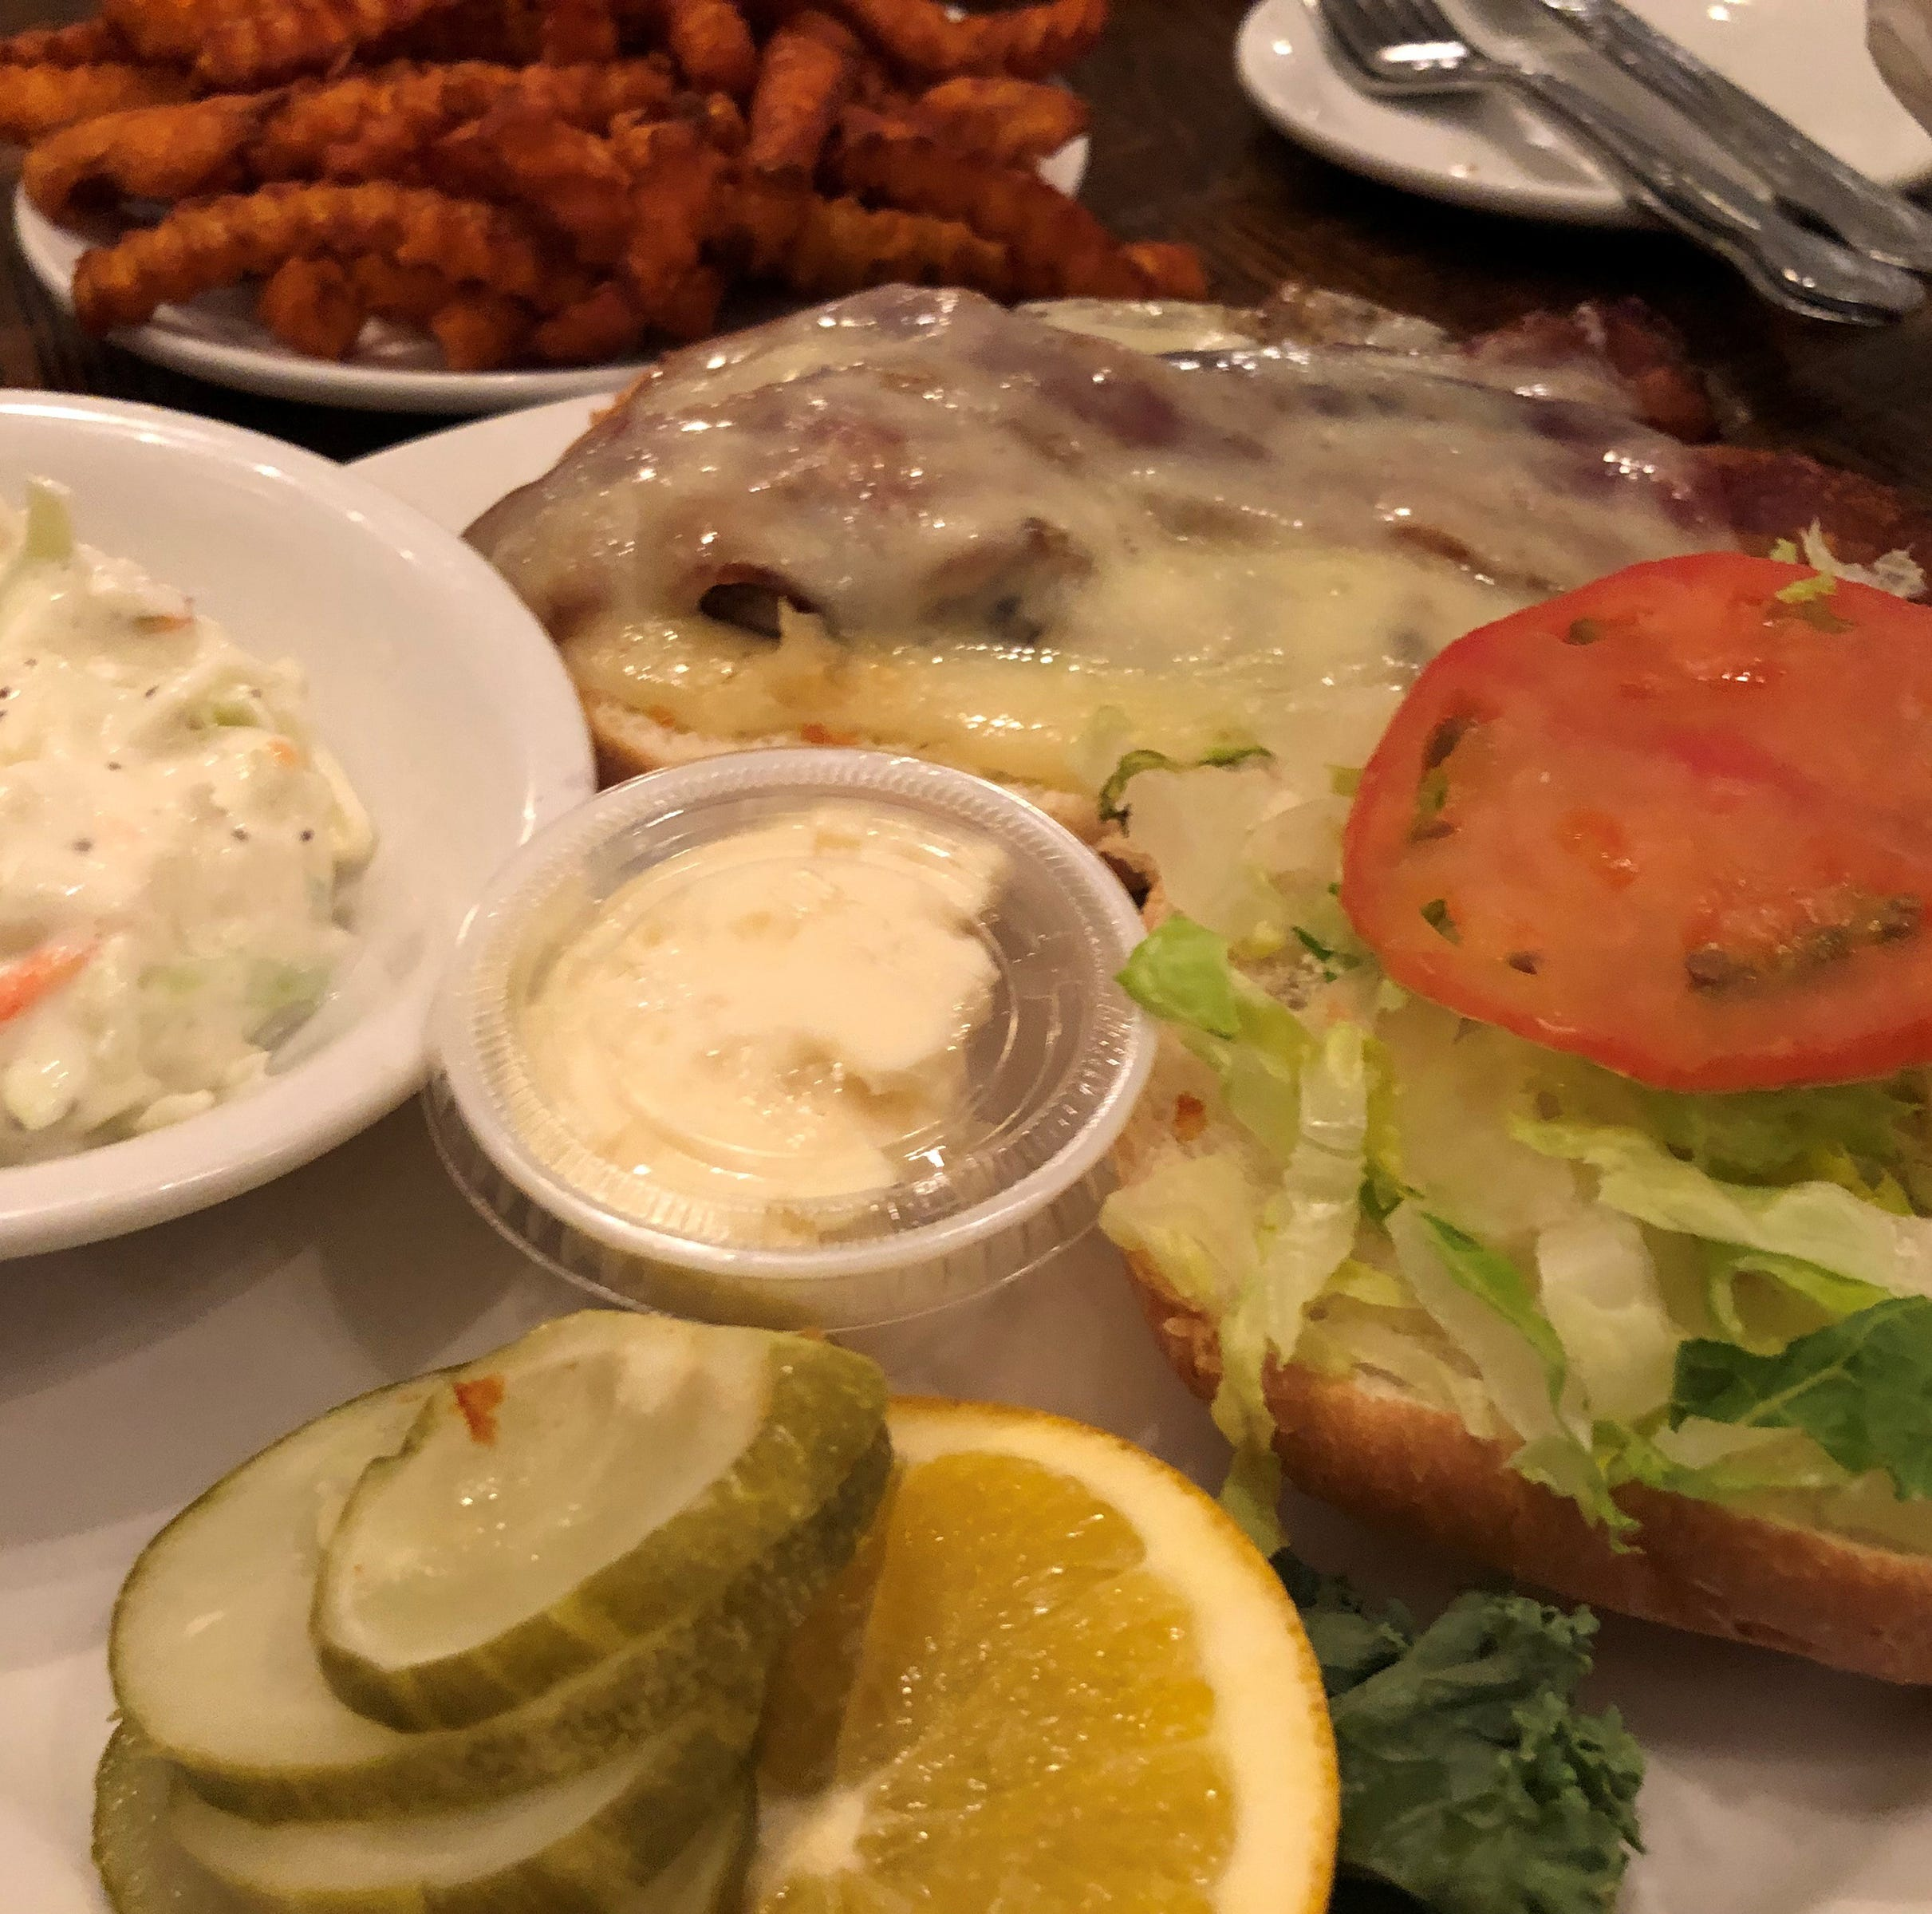 'Watts for Dinner': Kretch's – Unassuming setting, friendly faces make for fun time